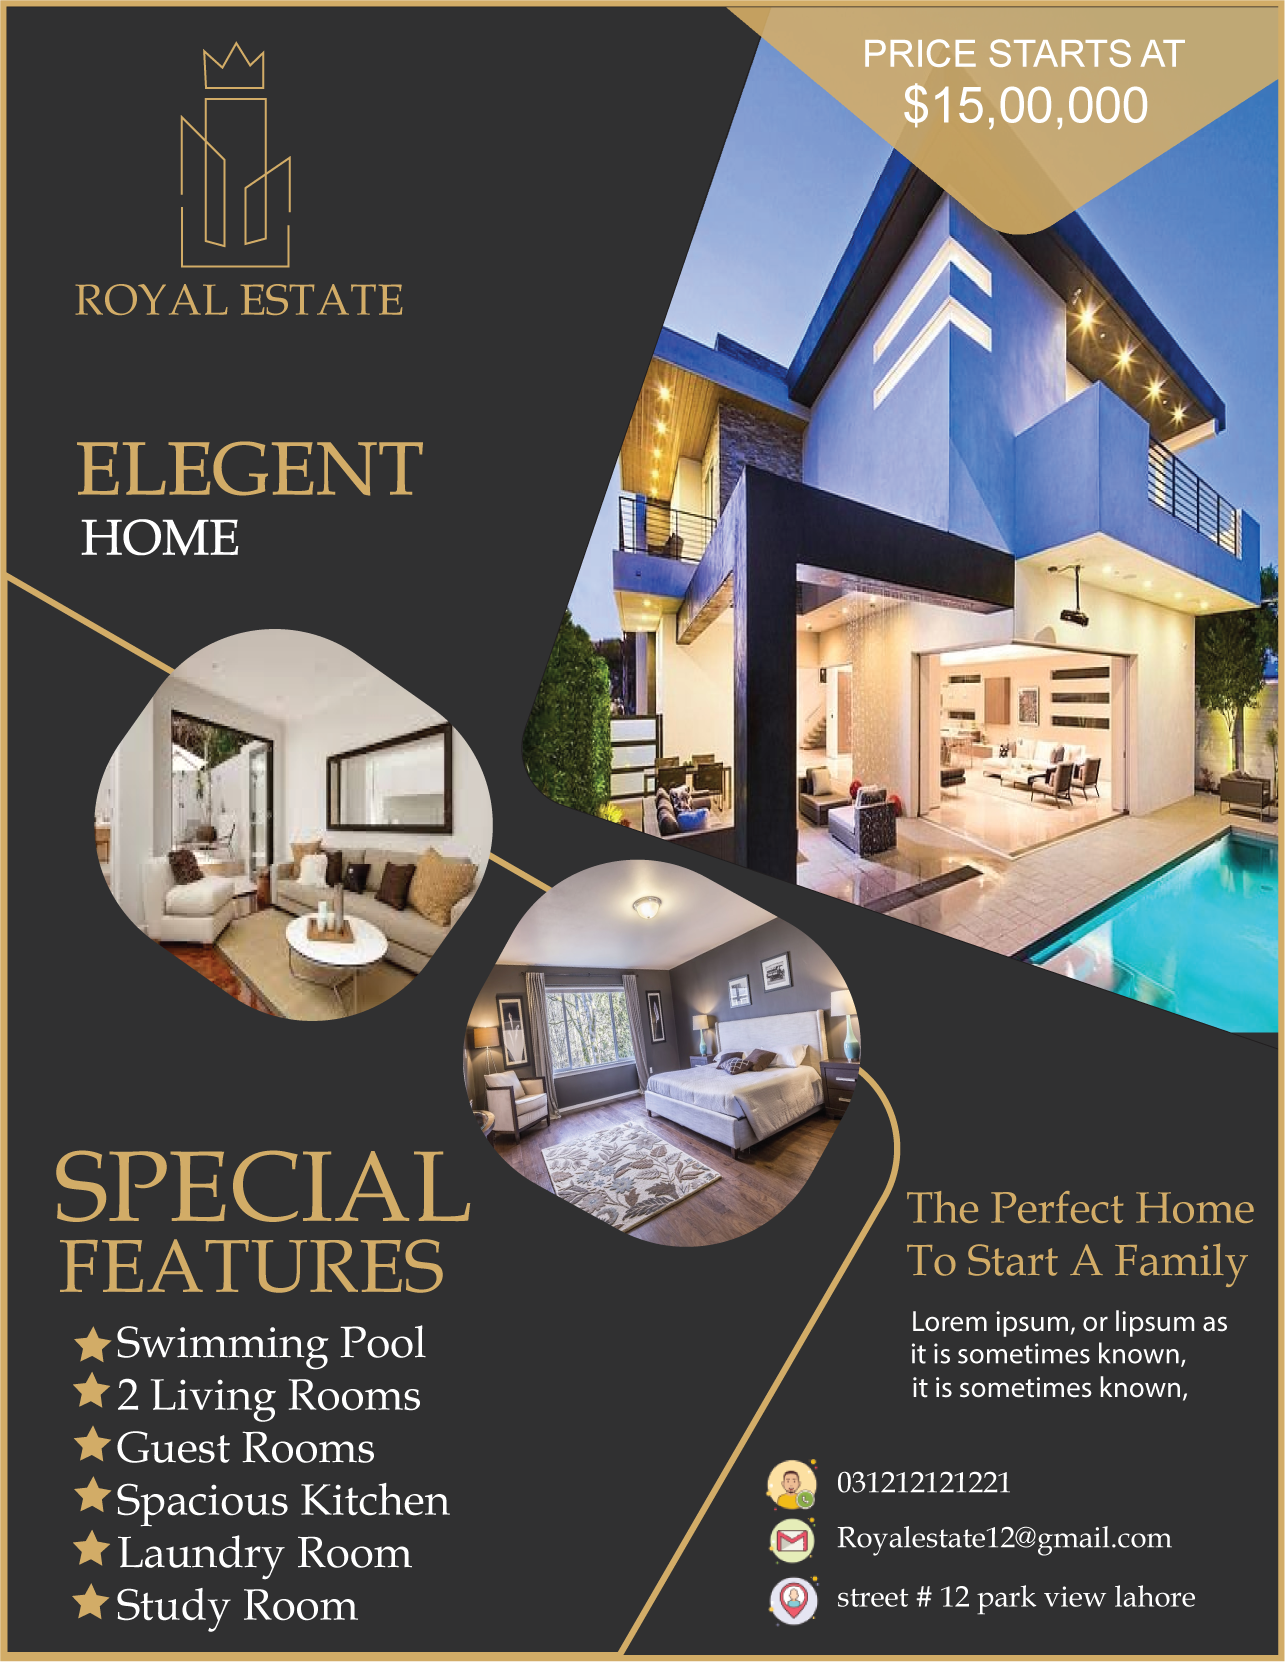 I will design professional real estate flyer,  brochure and web banner